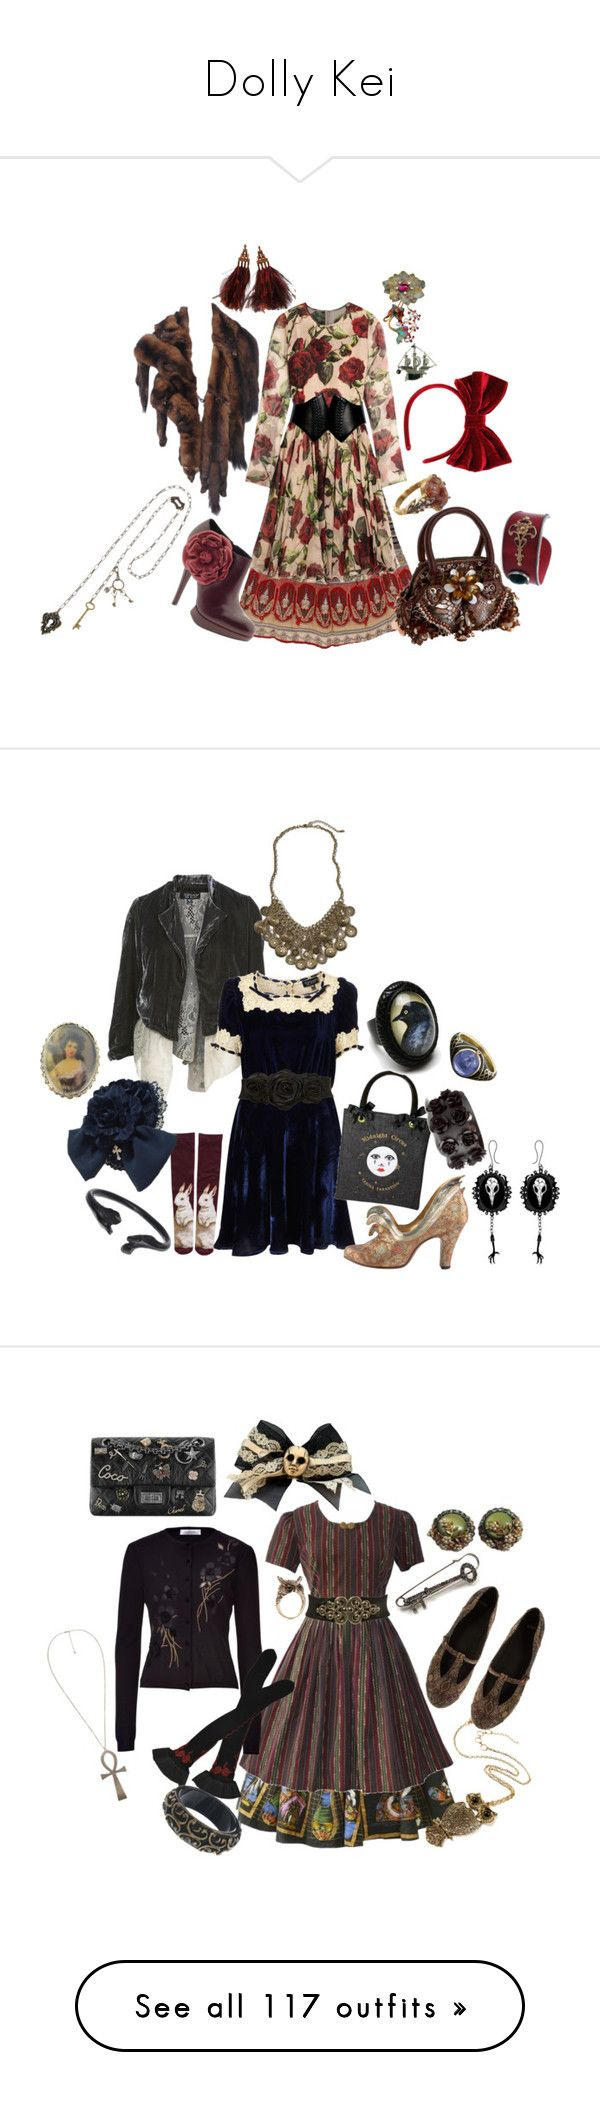 """""""Dolly Kei"""" by roseunspindle ❤ liked on Polyvore featuring dollykei, Dolce&Gabbana, Alaïa, Kelsi Dagger Brooklyn, Topshop, Antiquities Couture, Louis Vuitton, Cathy Waterman, Miss Selfridge and Tarina Tarantino"""